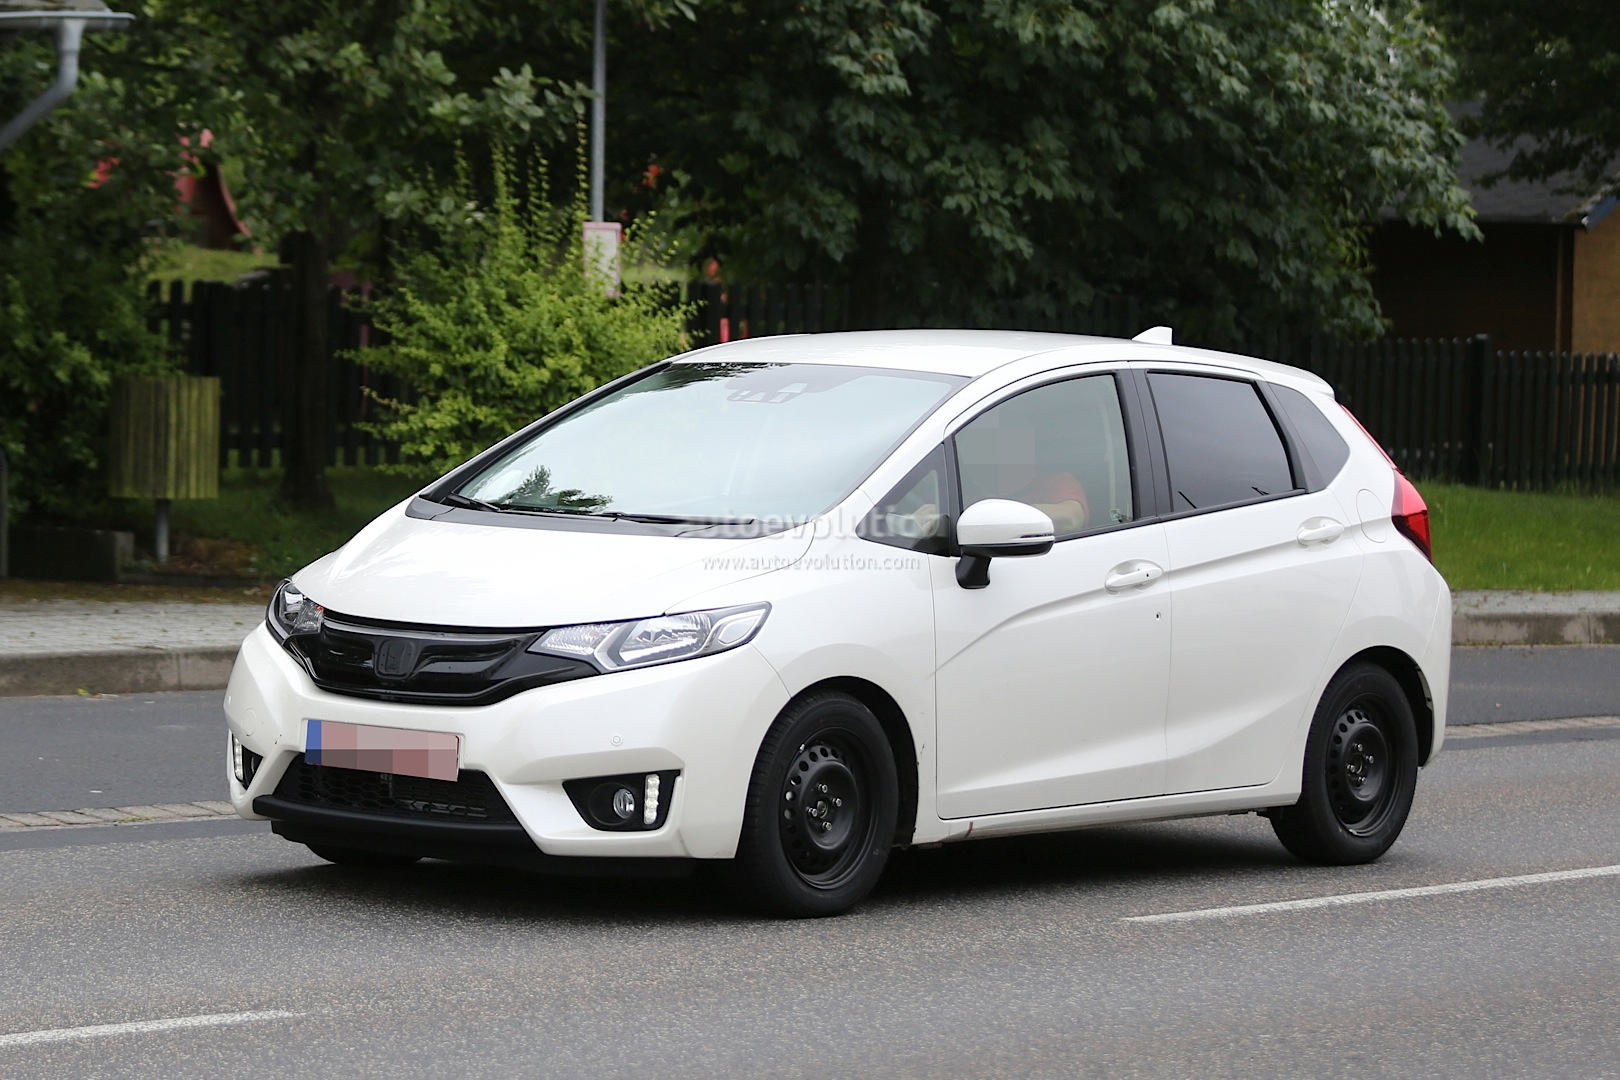 spyshots all new 2015 honda jazz testing in europe for the first time autoevolution. Black Bedroom Furniture Sets. Home Design Ideas